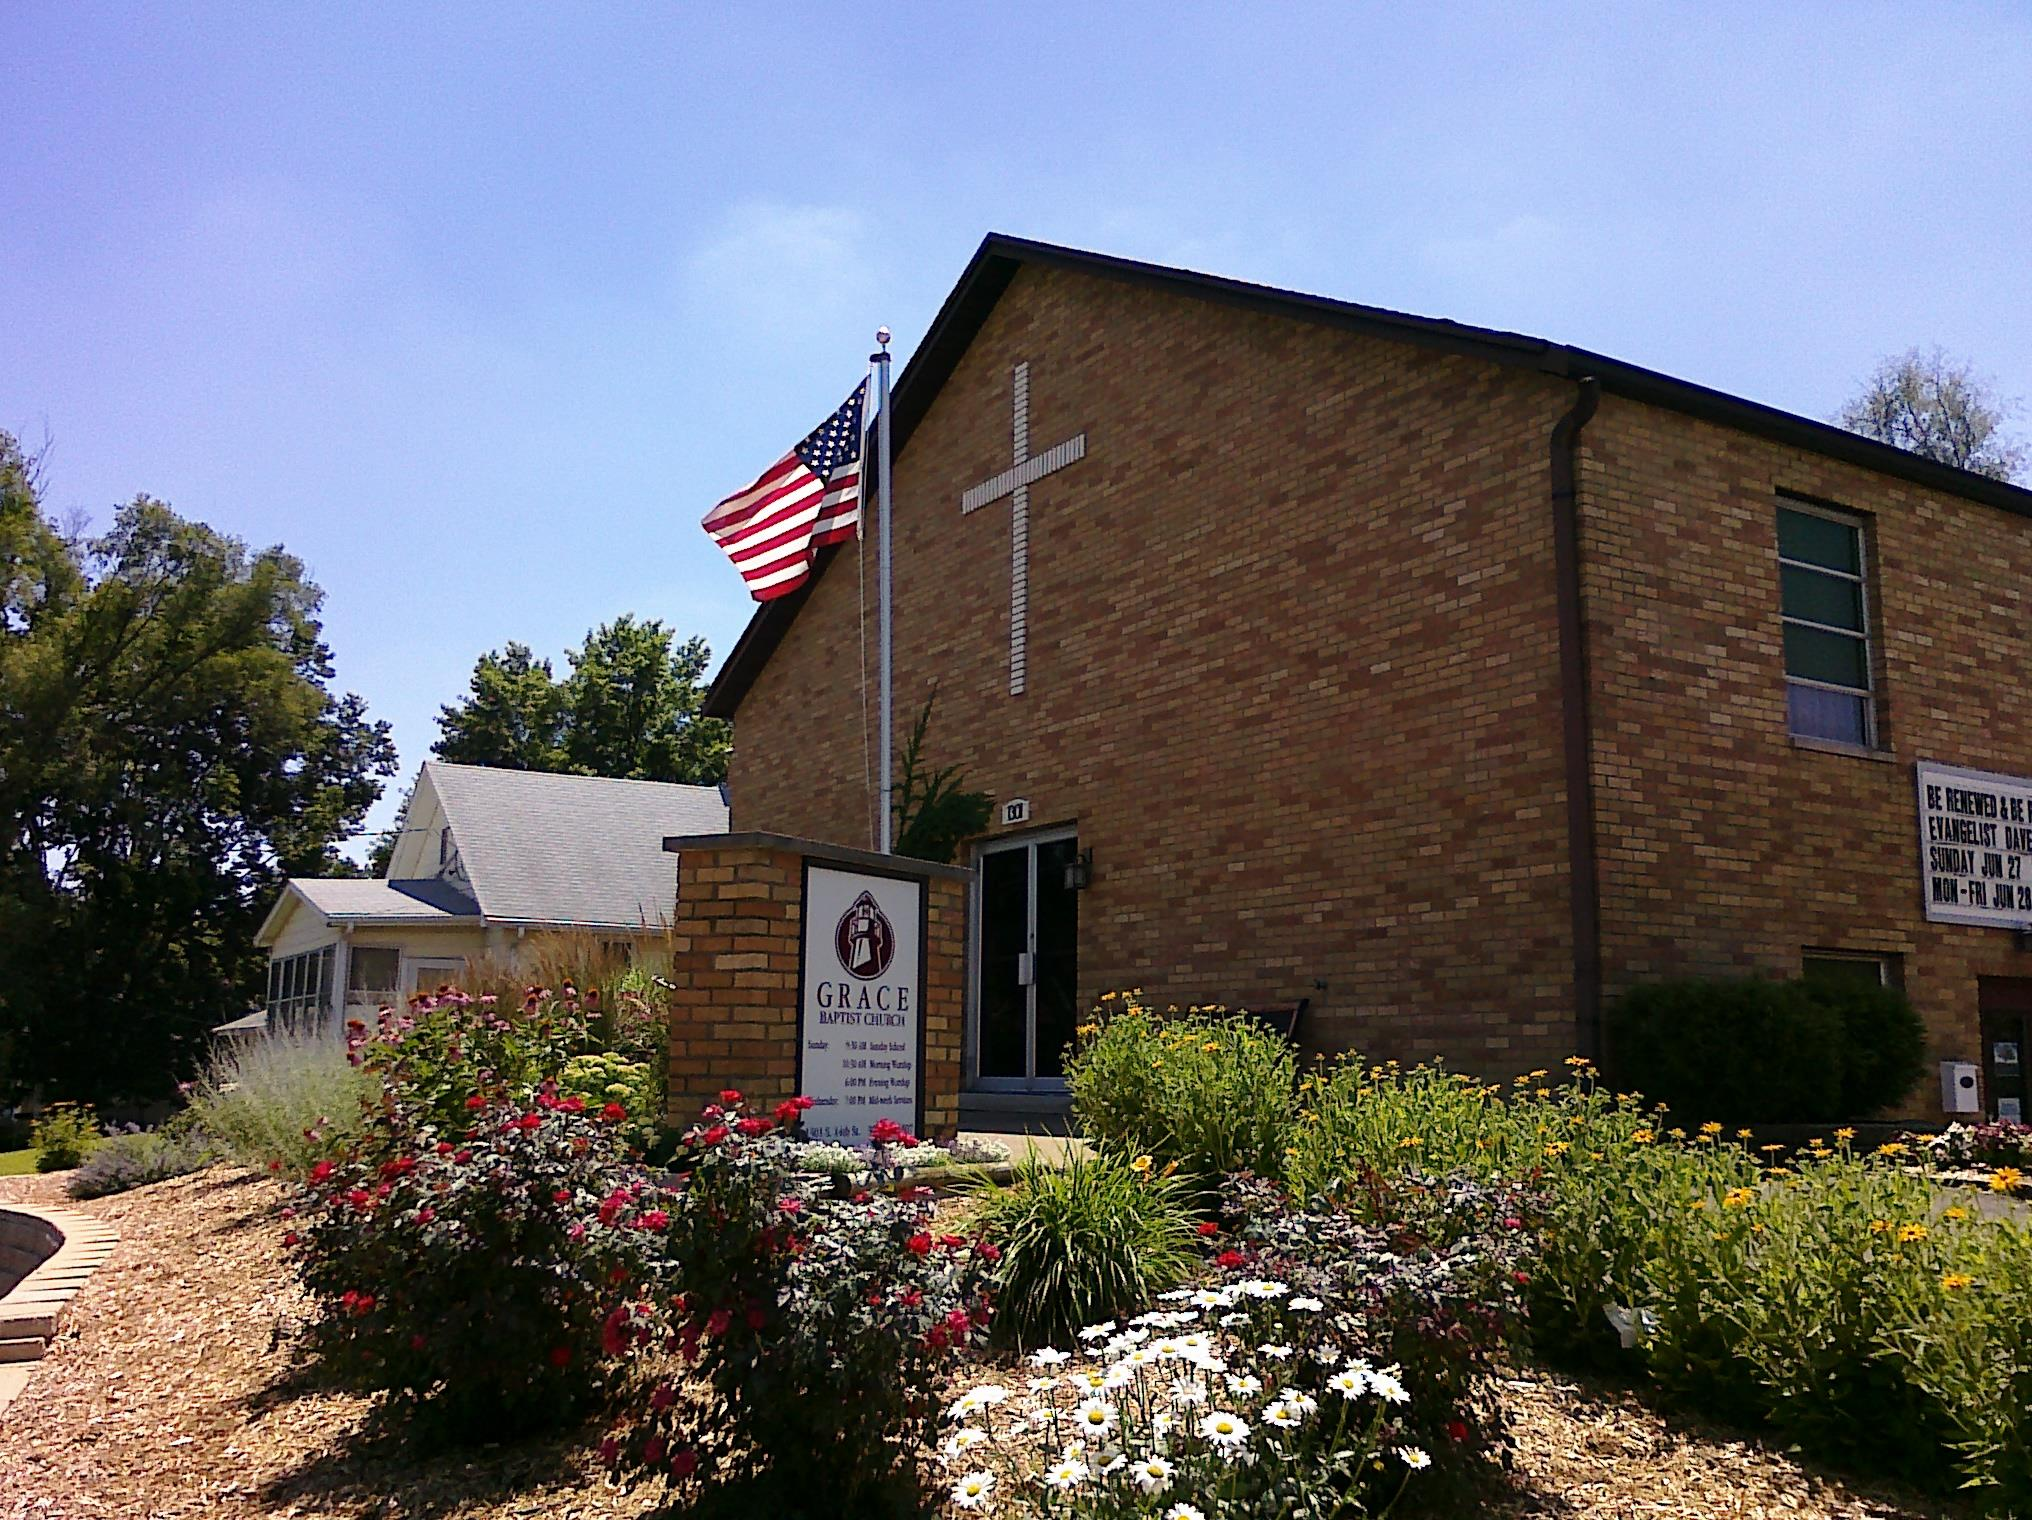 grace baptist church pekin il kjv churches grace baptist church pekin il kjv